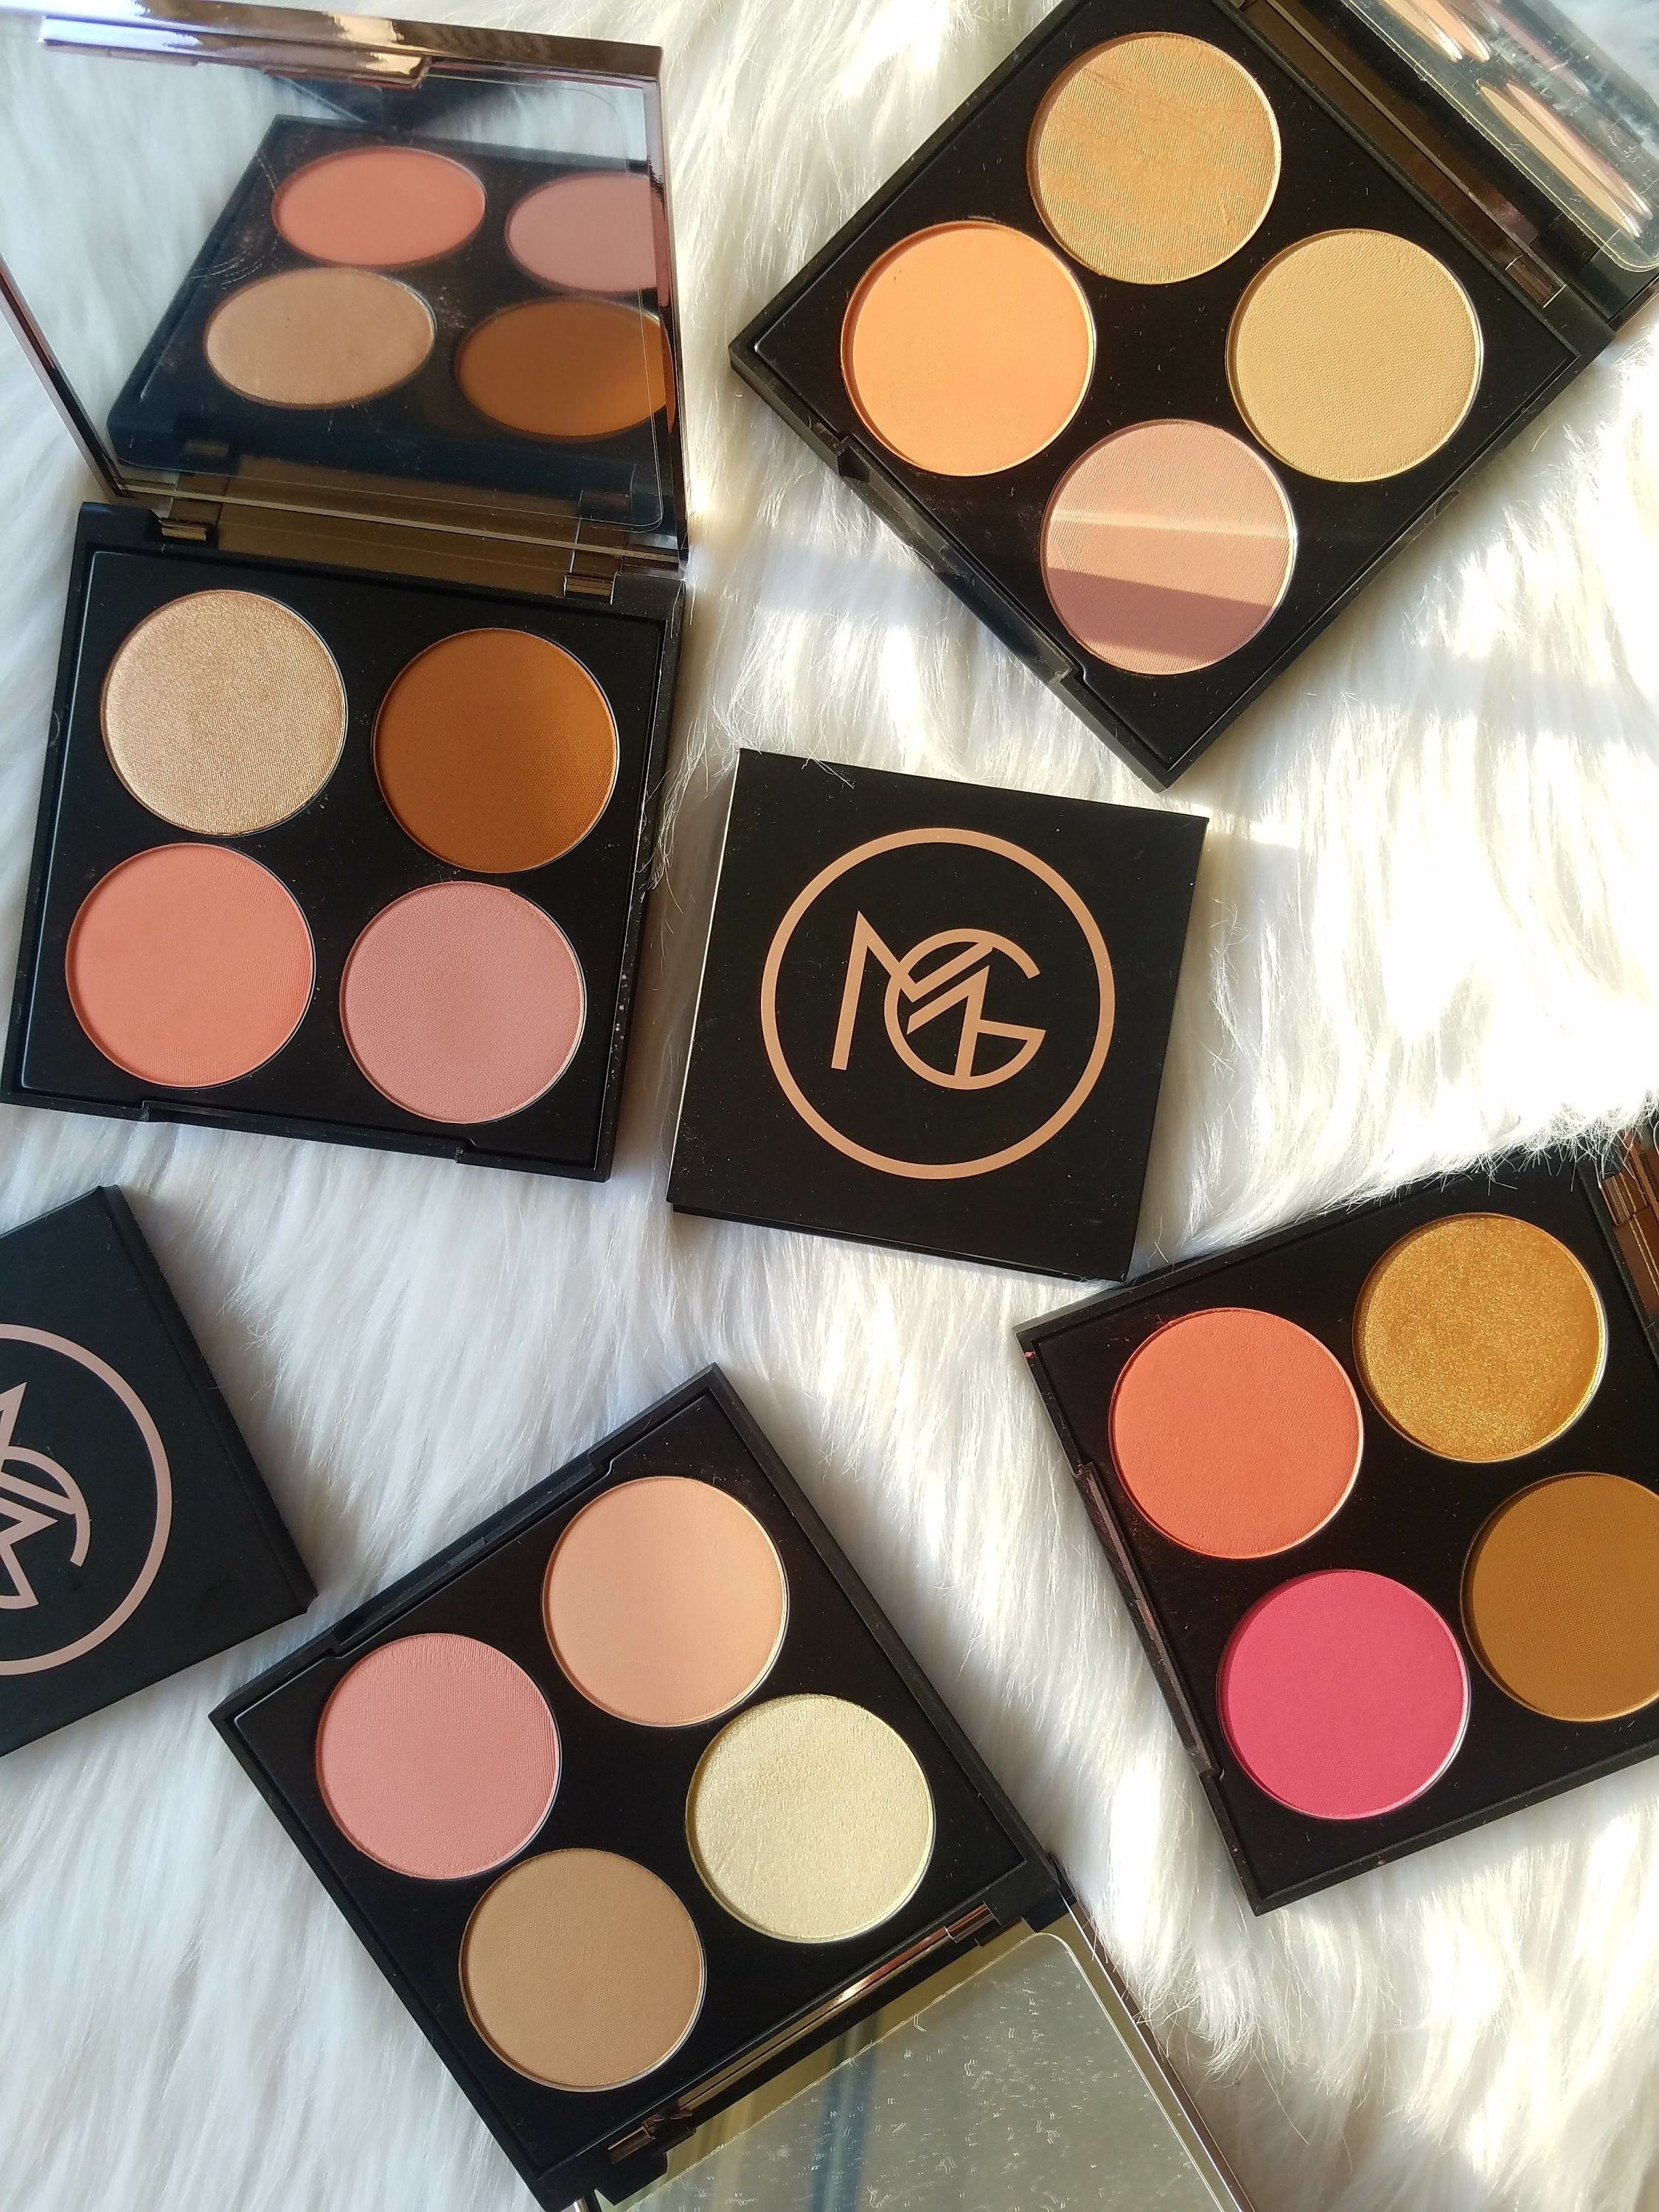 Makeup Geek review for flawless full face makeup looks